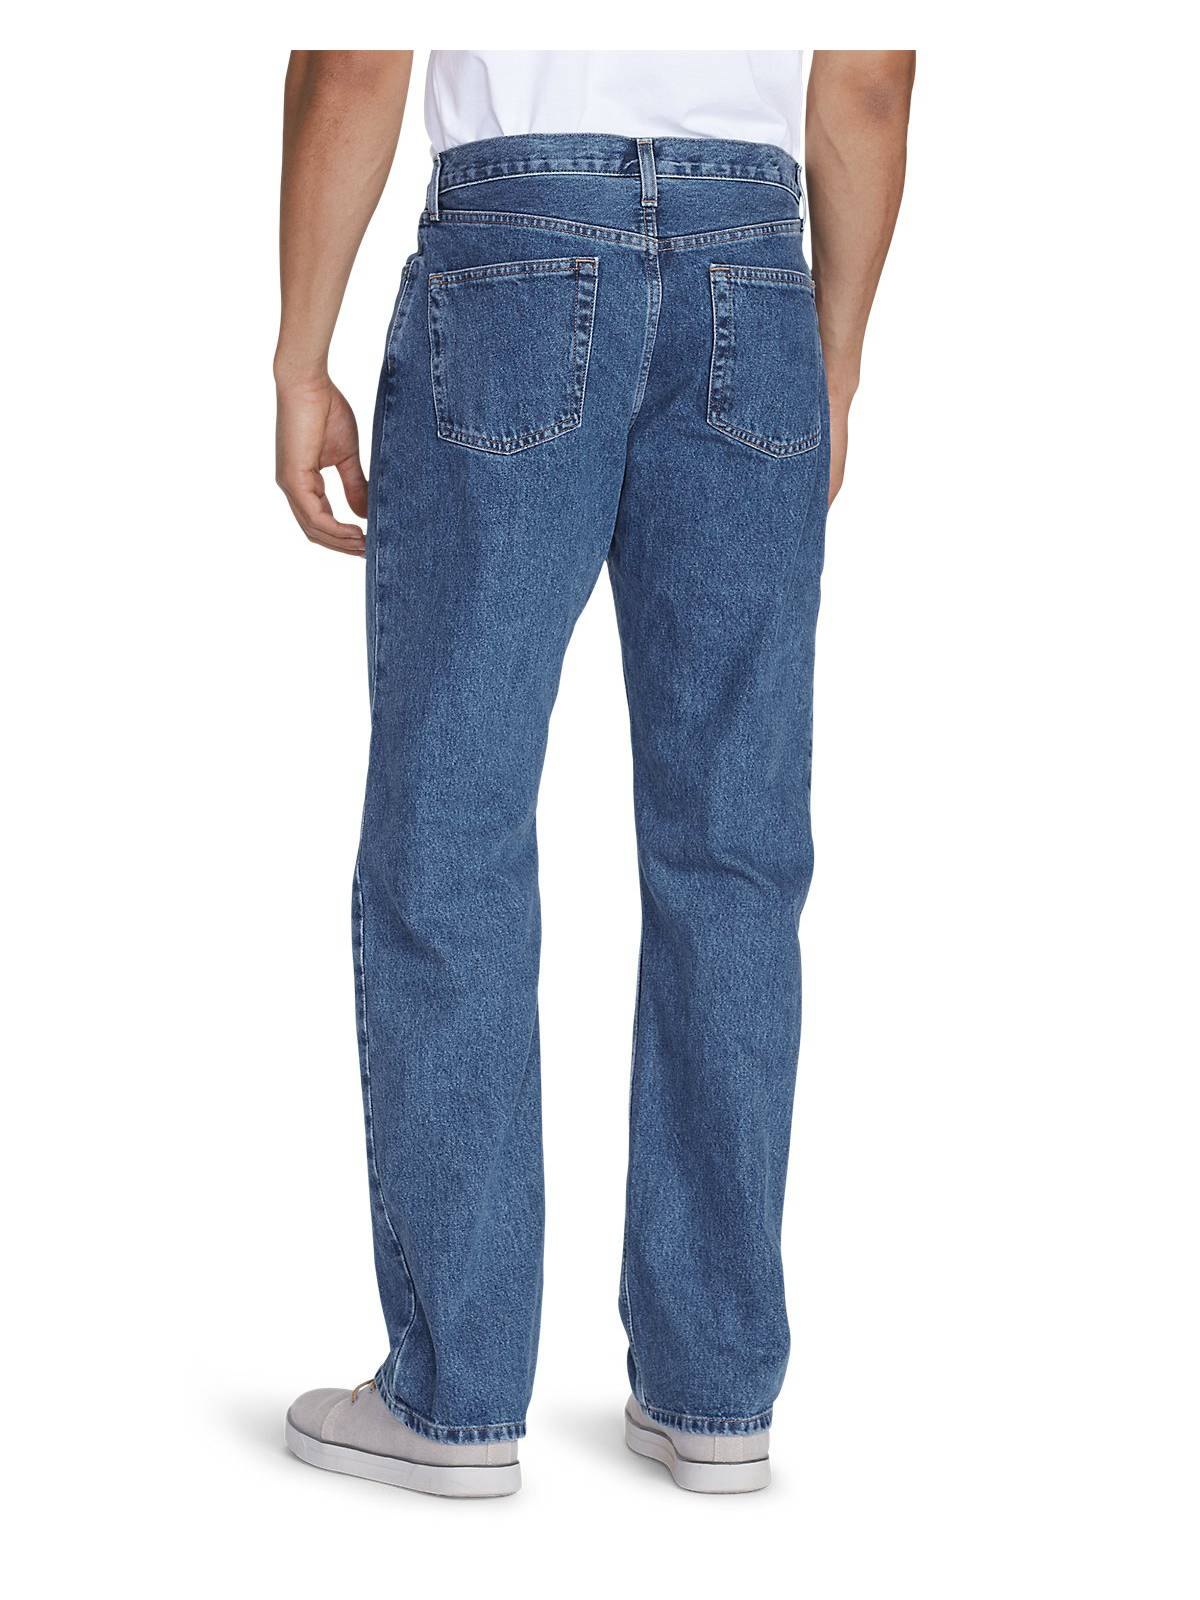 Eddie-Bauer-Men-039-s-Relaxed-Fit-Essential-Jeans thumbnail 5